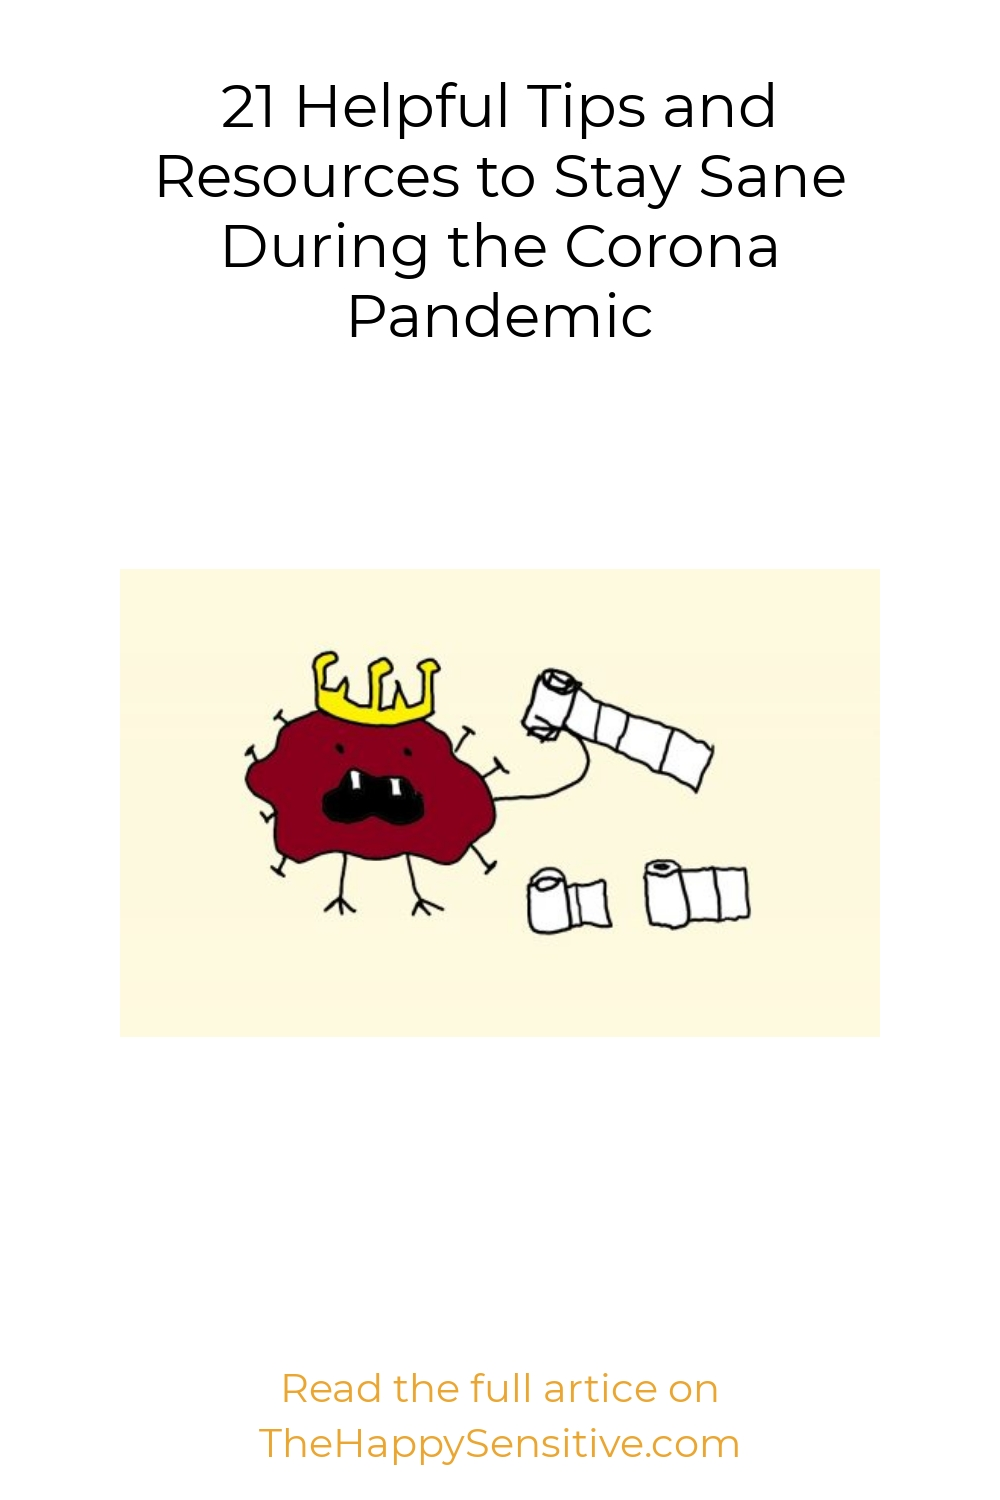 21 Helpful Tips and Resources to Stay Sane During the Corona Pandemic